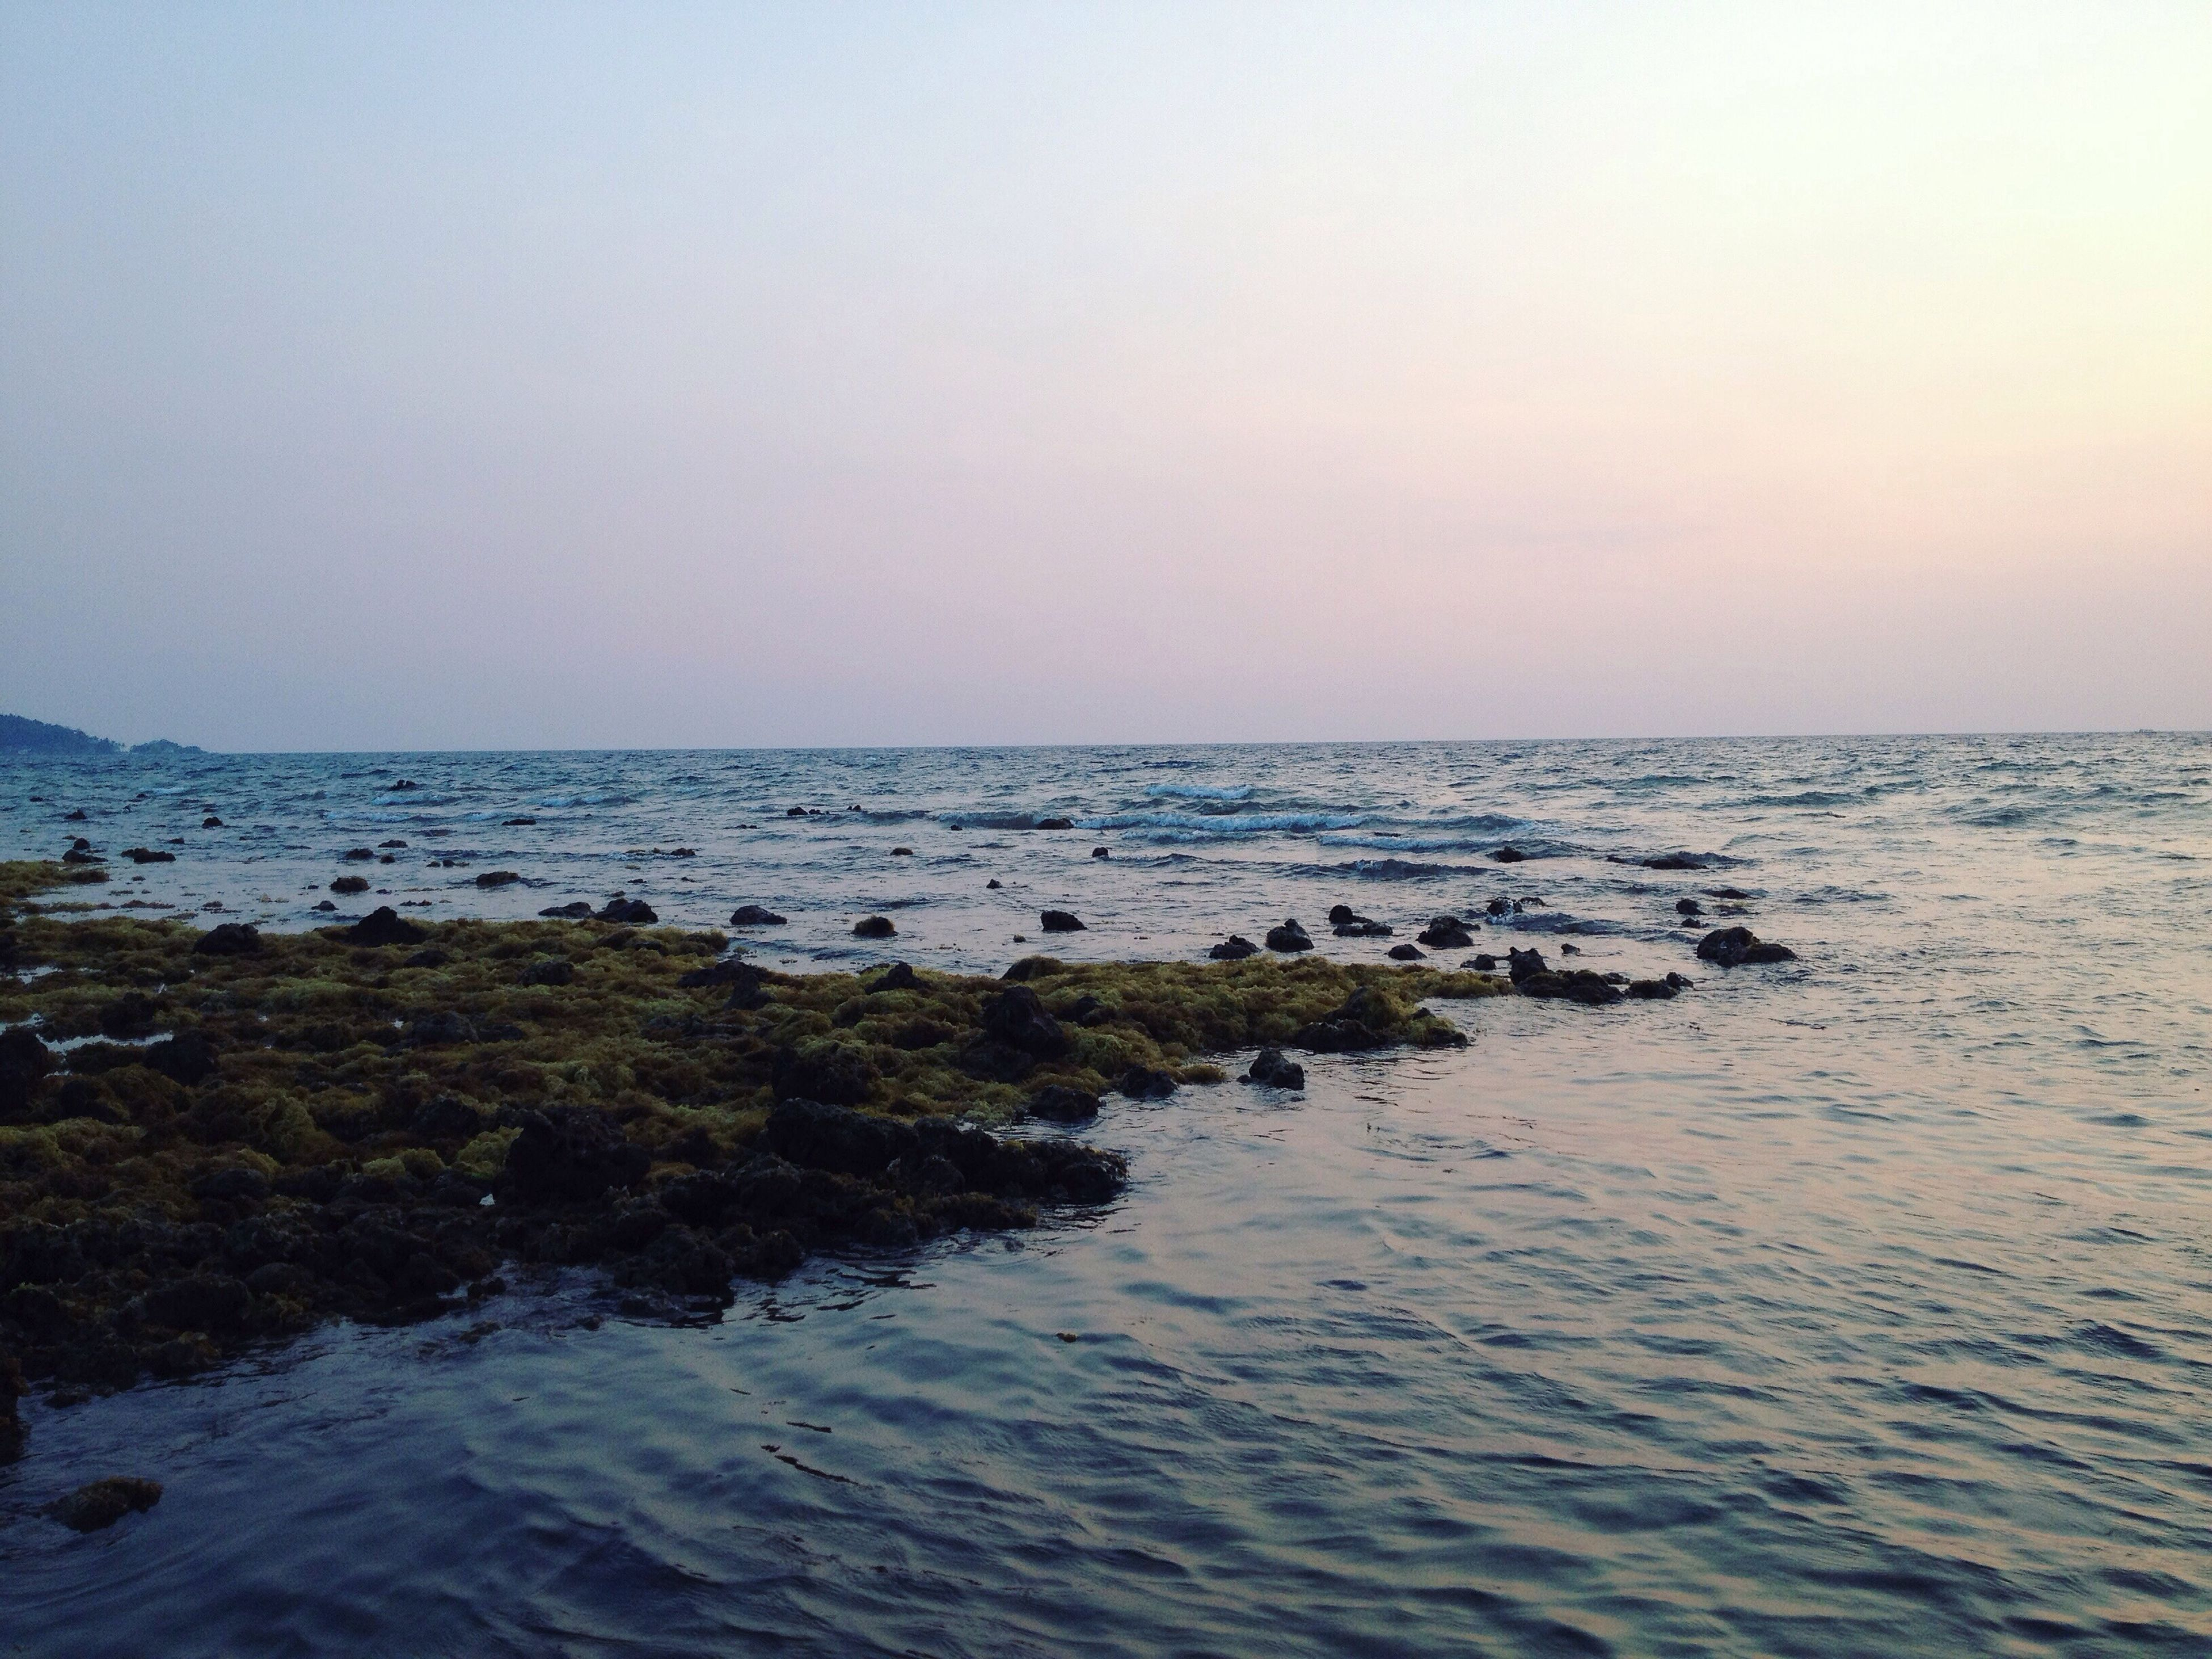 water, sea, horizon over water, clear sky, tranquil scene, scenics, tranquility, copy space, beauty in nature, waterfront, nature, idyllic, rippled, sky, remote, beach, seascape, non-urban scene, outdoors, no people